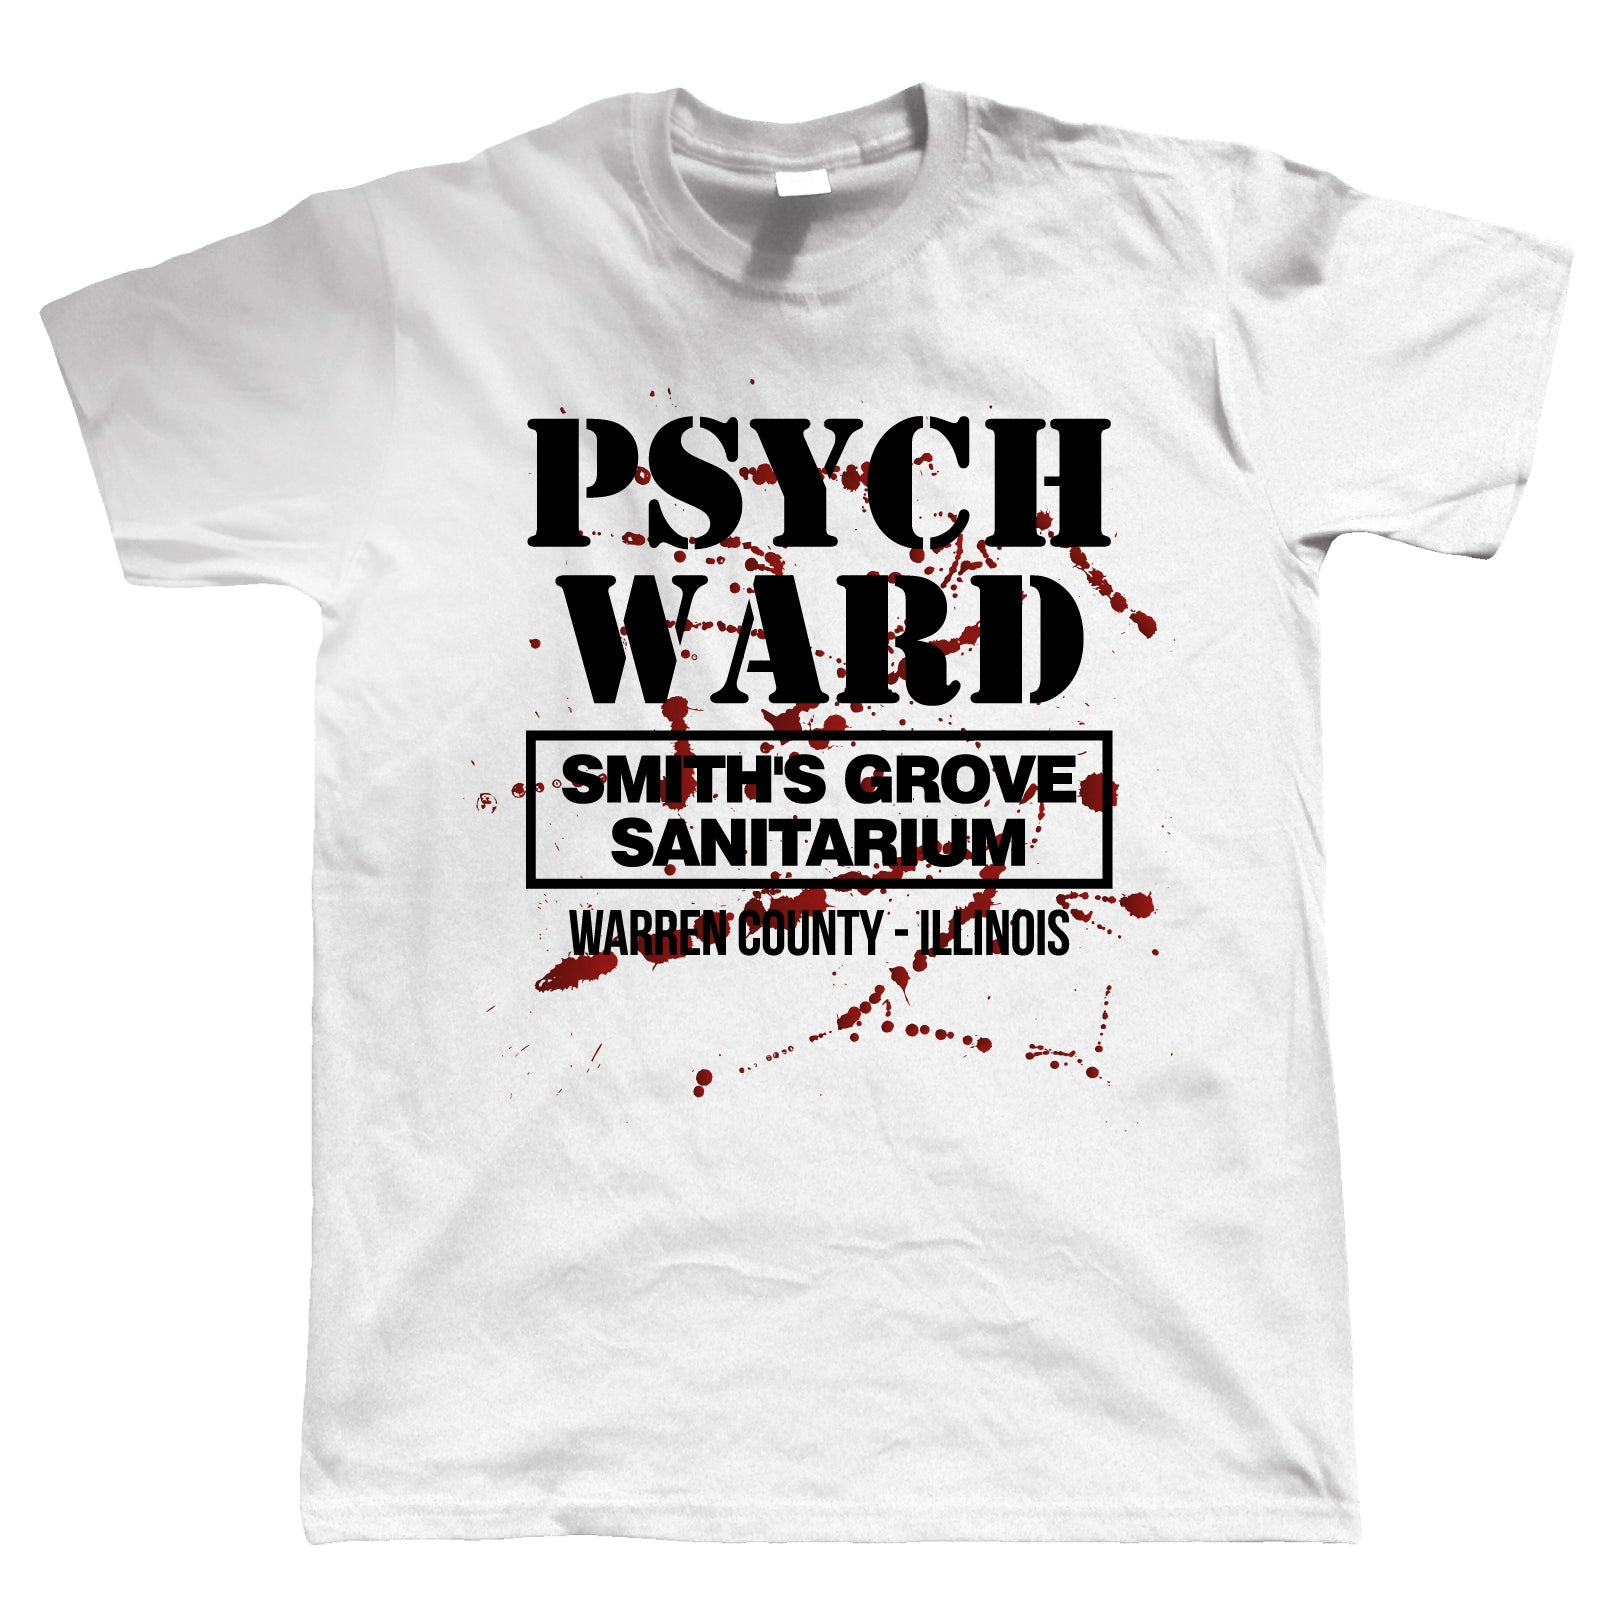 Smiths Grove Sanitarium, Mens T Shirt